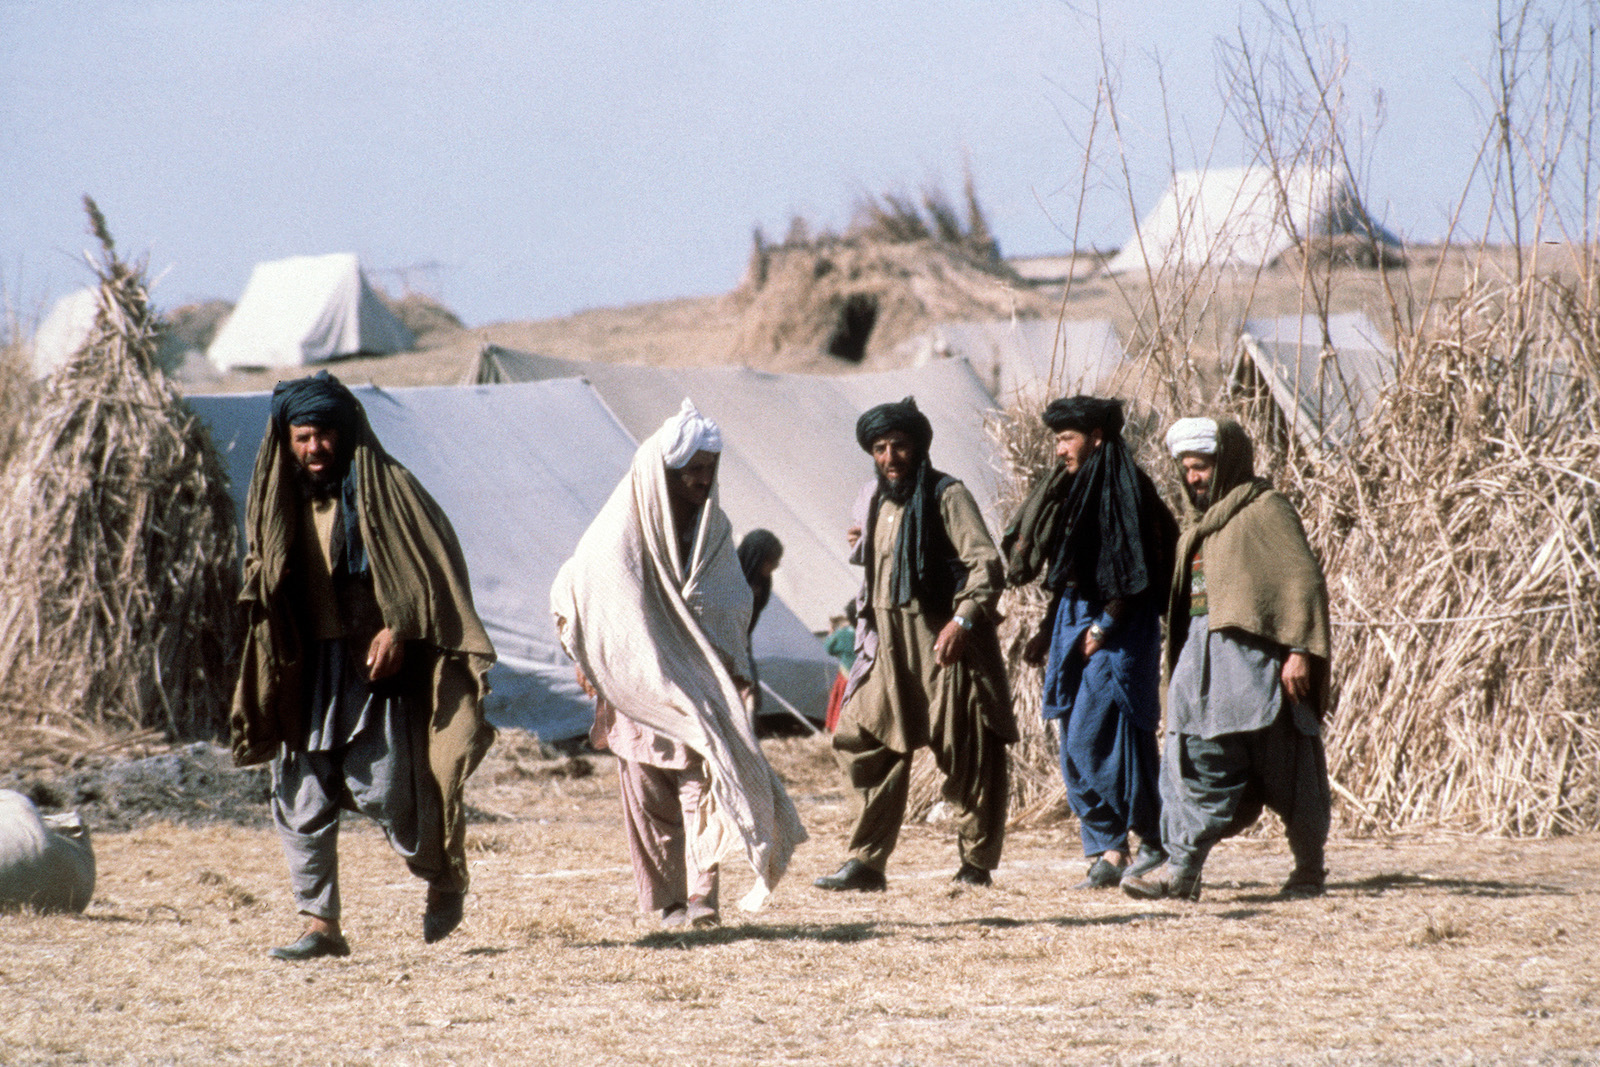 In February 1980 Afghan refugees who have fled the area of Kabul in December 1979, are shown in the Aza Khel refugee camp near Peshawar in Pakistan. Photo: AFP / EPU